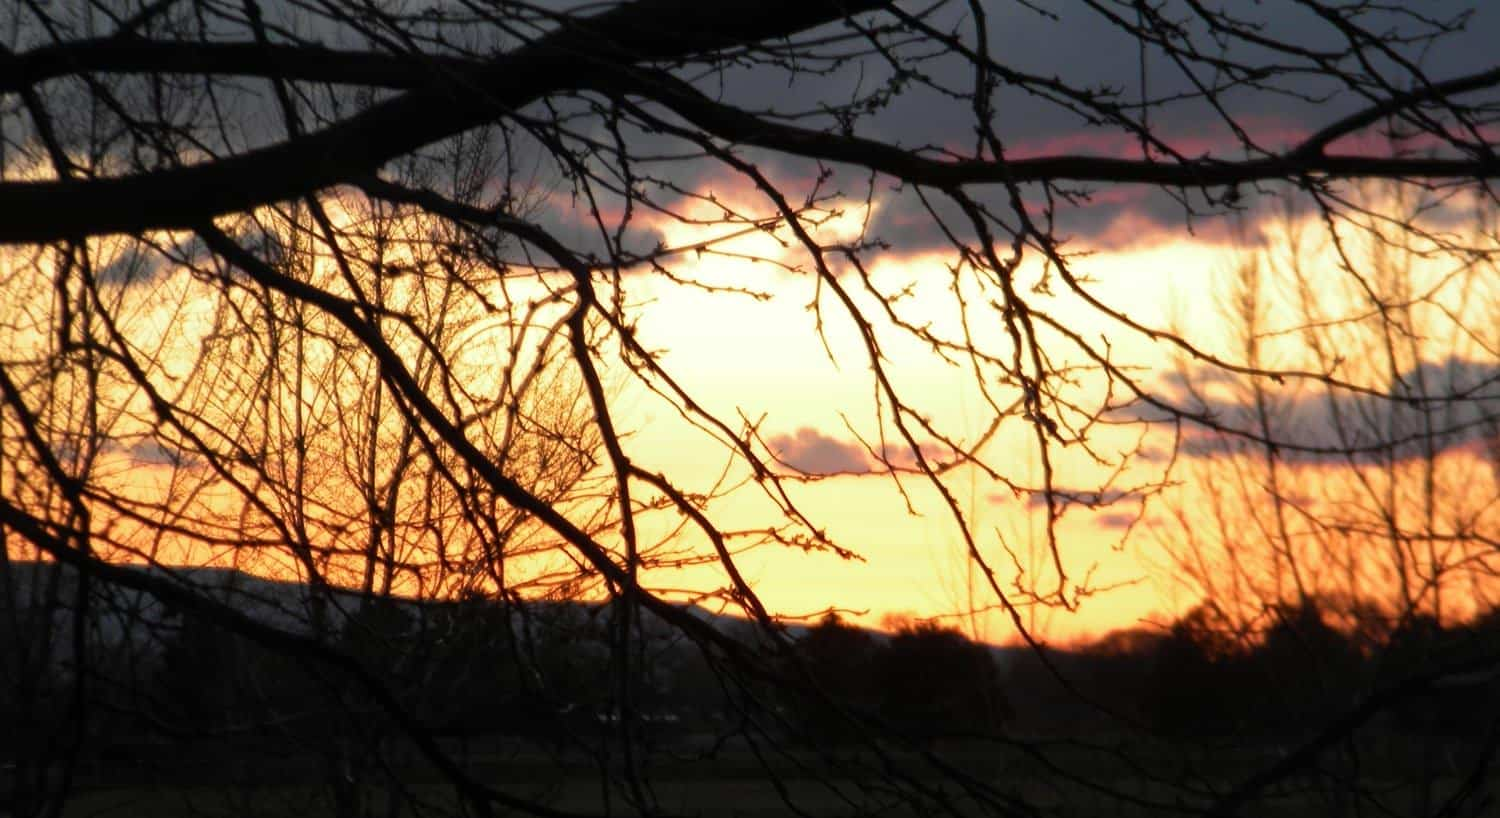 Sunset with bright yellow and orange sky peering through tree branches